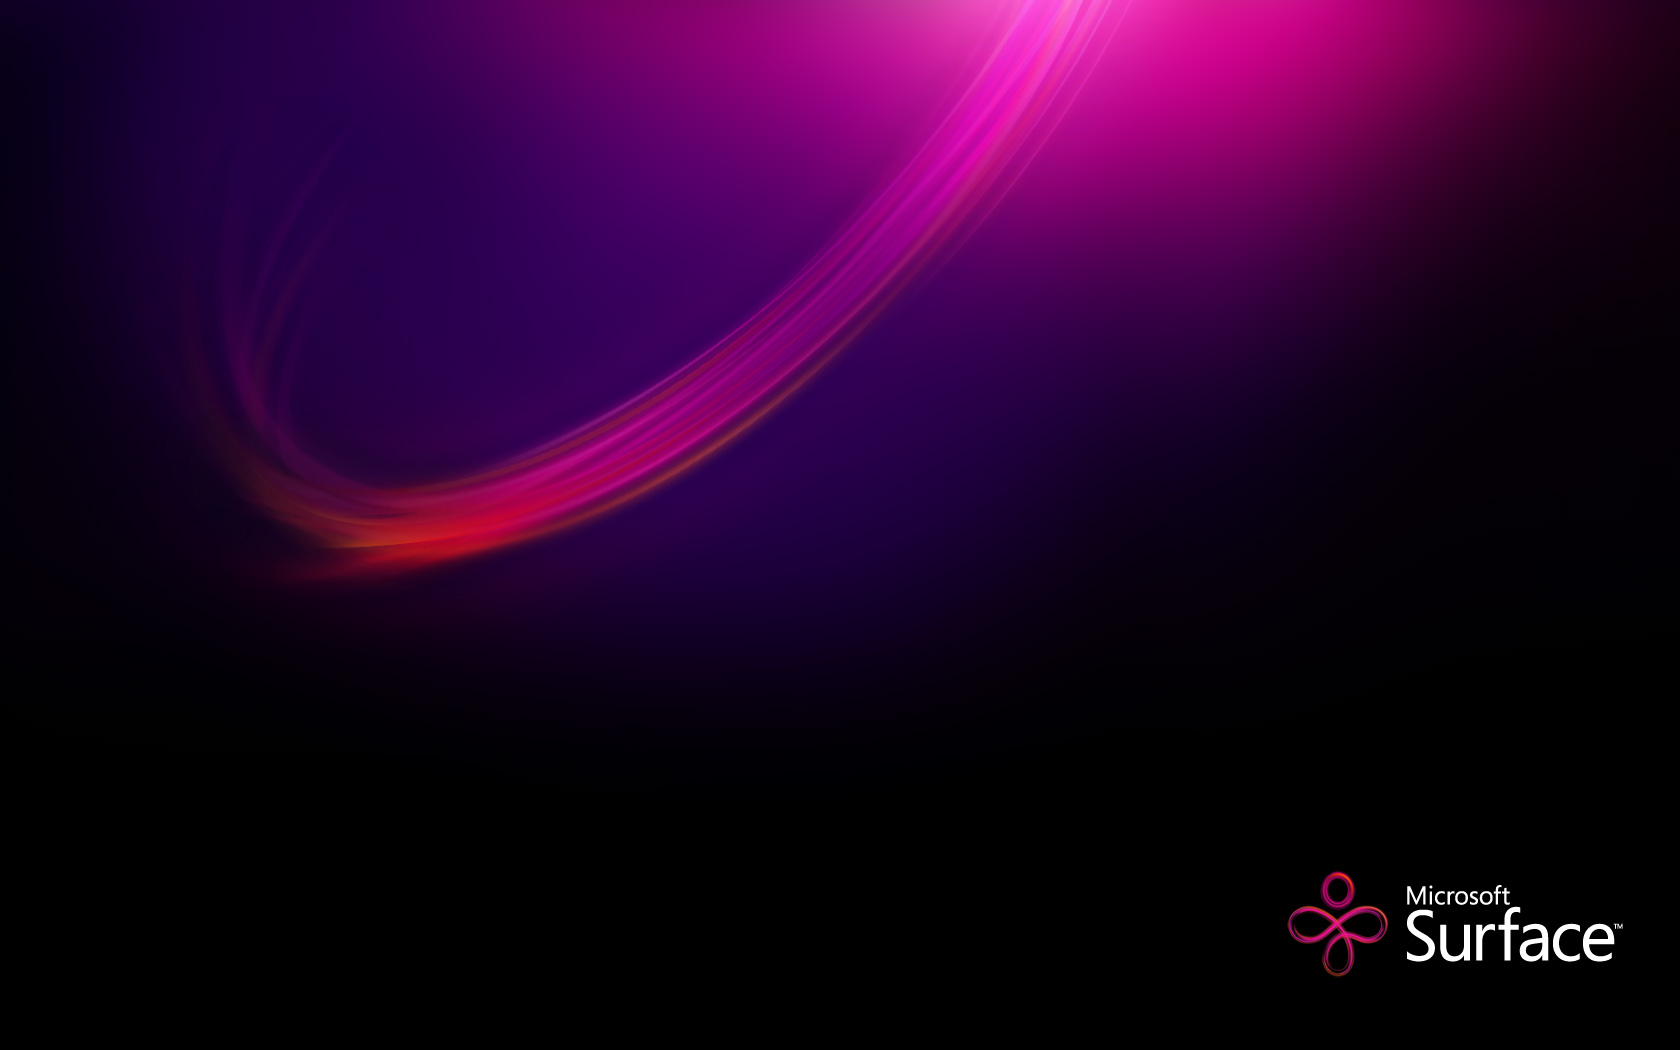 44 Surface Pro Hd Wallpaper On Wallpapersafari